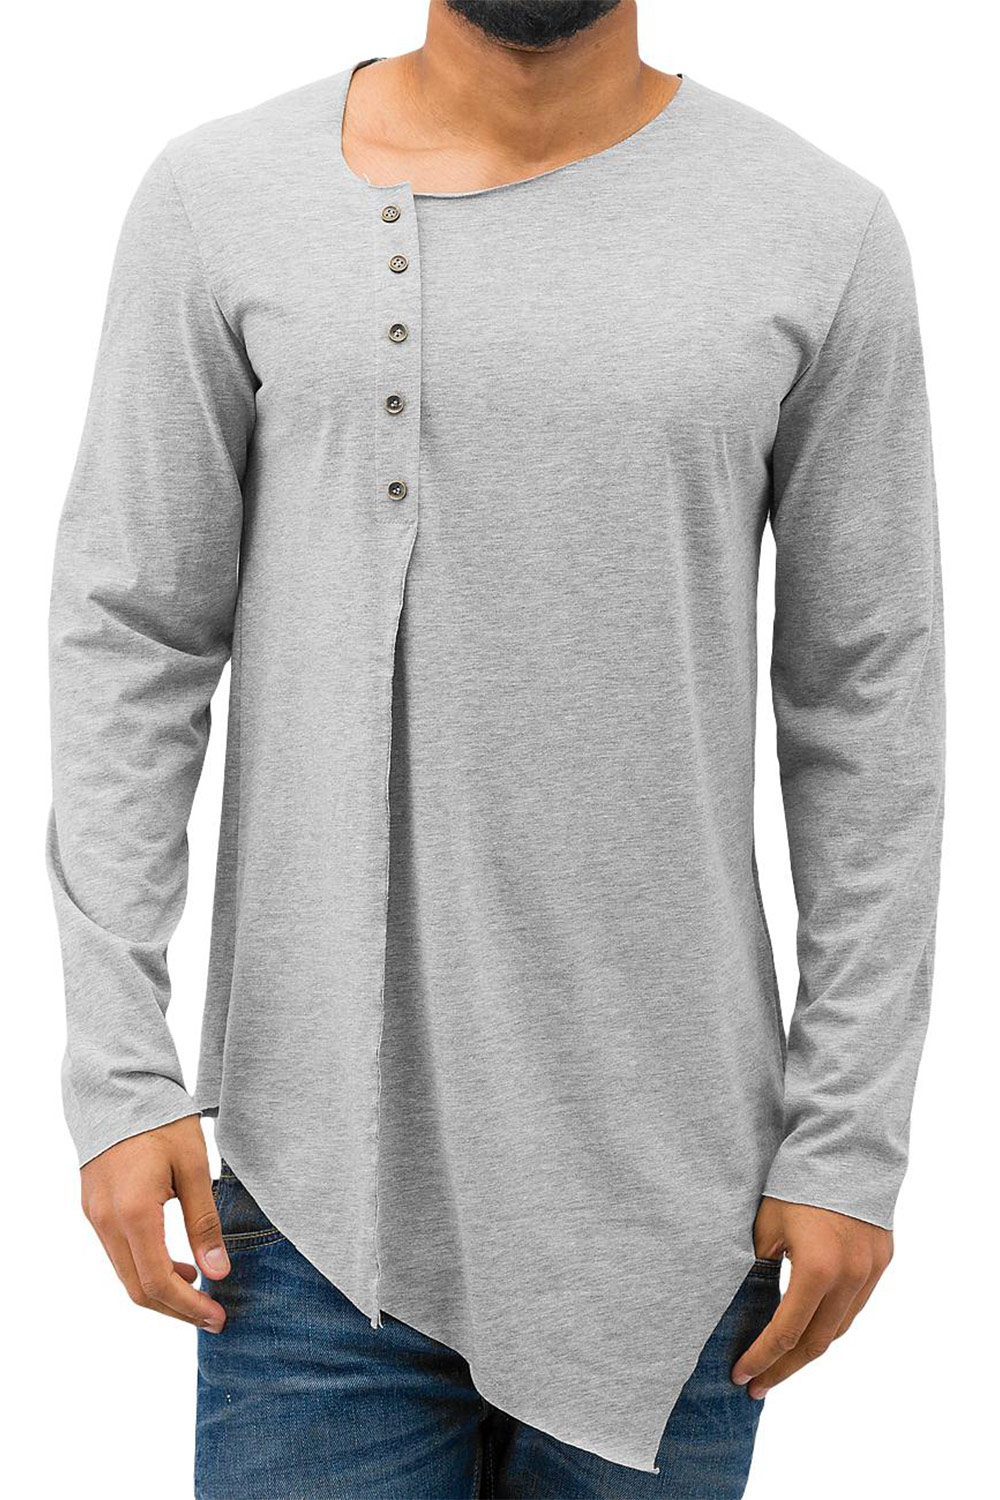 JUST RHYSE Zyon T-Shirt Grey auf oboy.de